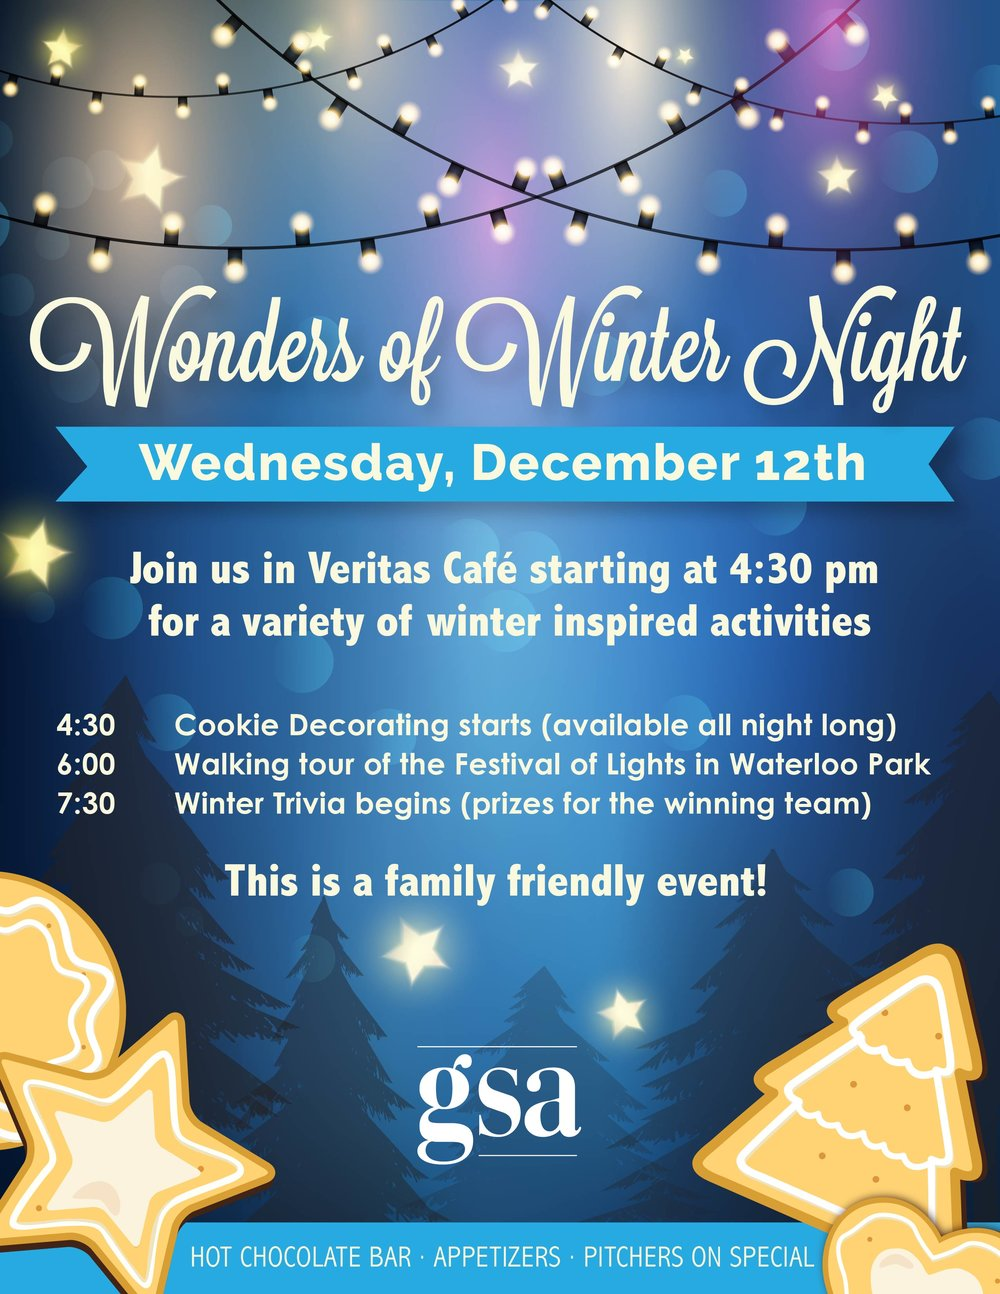 Wonders of winter night: Wednesday, December 12th. Join us in Veritas Cafe starting at 4:30 pm for a variety of winter inspired activities. 4:30 pm cooking decorating starts (available all night long). 6:00 pm walking tour of the festival of lights in Waterloo Park. 7:30 Winter trivia begins (prizes for the winning team). This is a family friendly event! There will be a hot chocolate bar, appetizers, and pitchers will be on special.